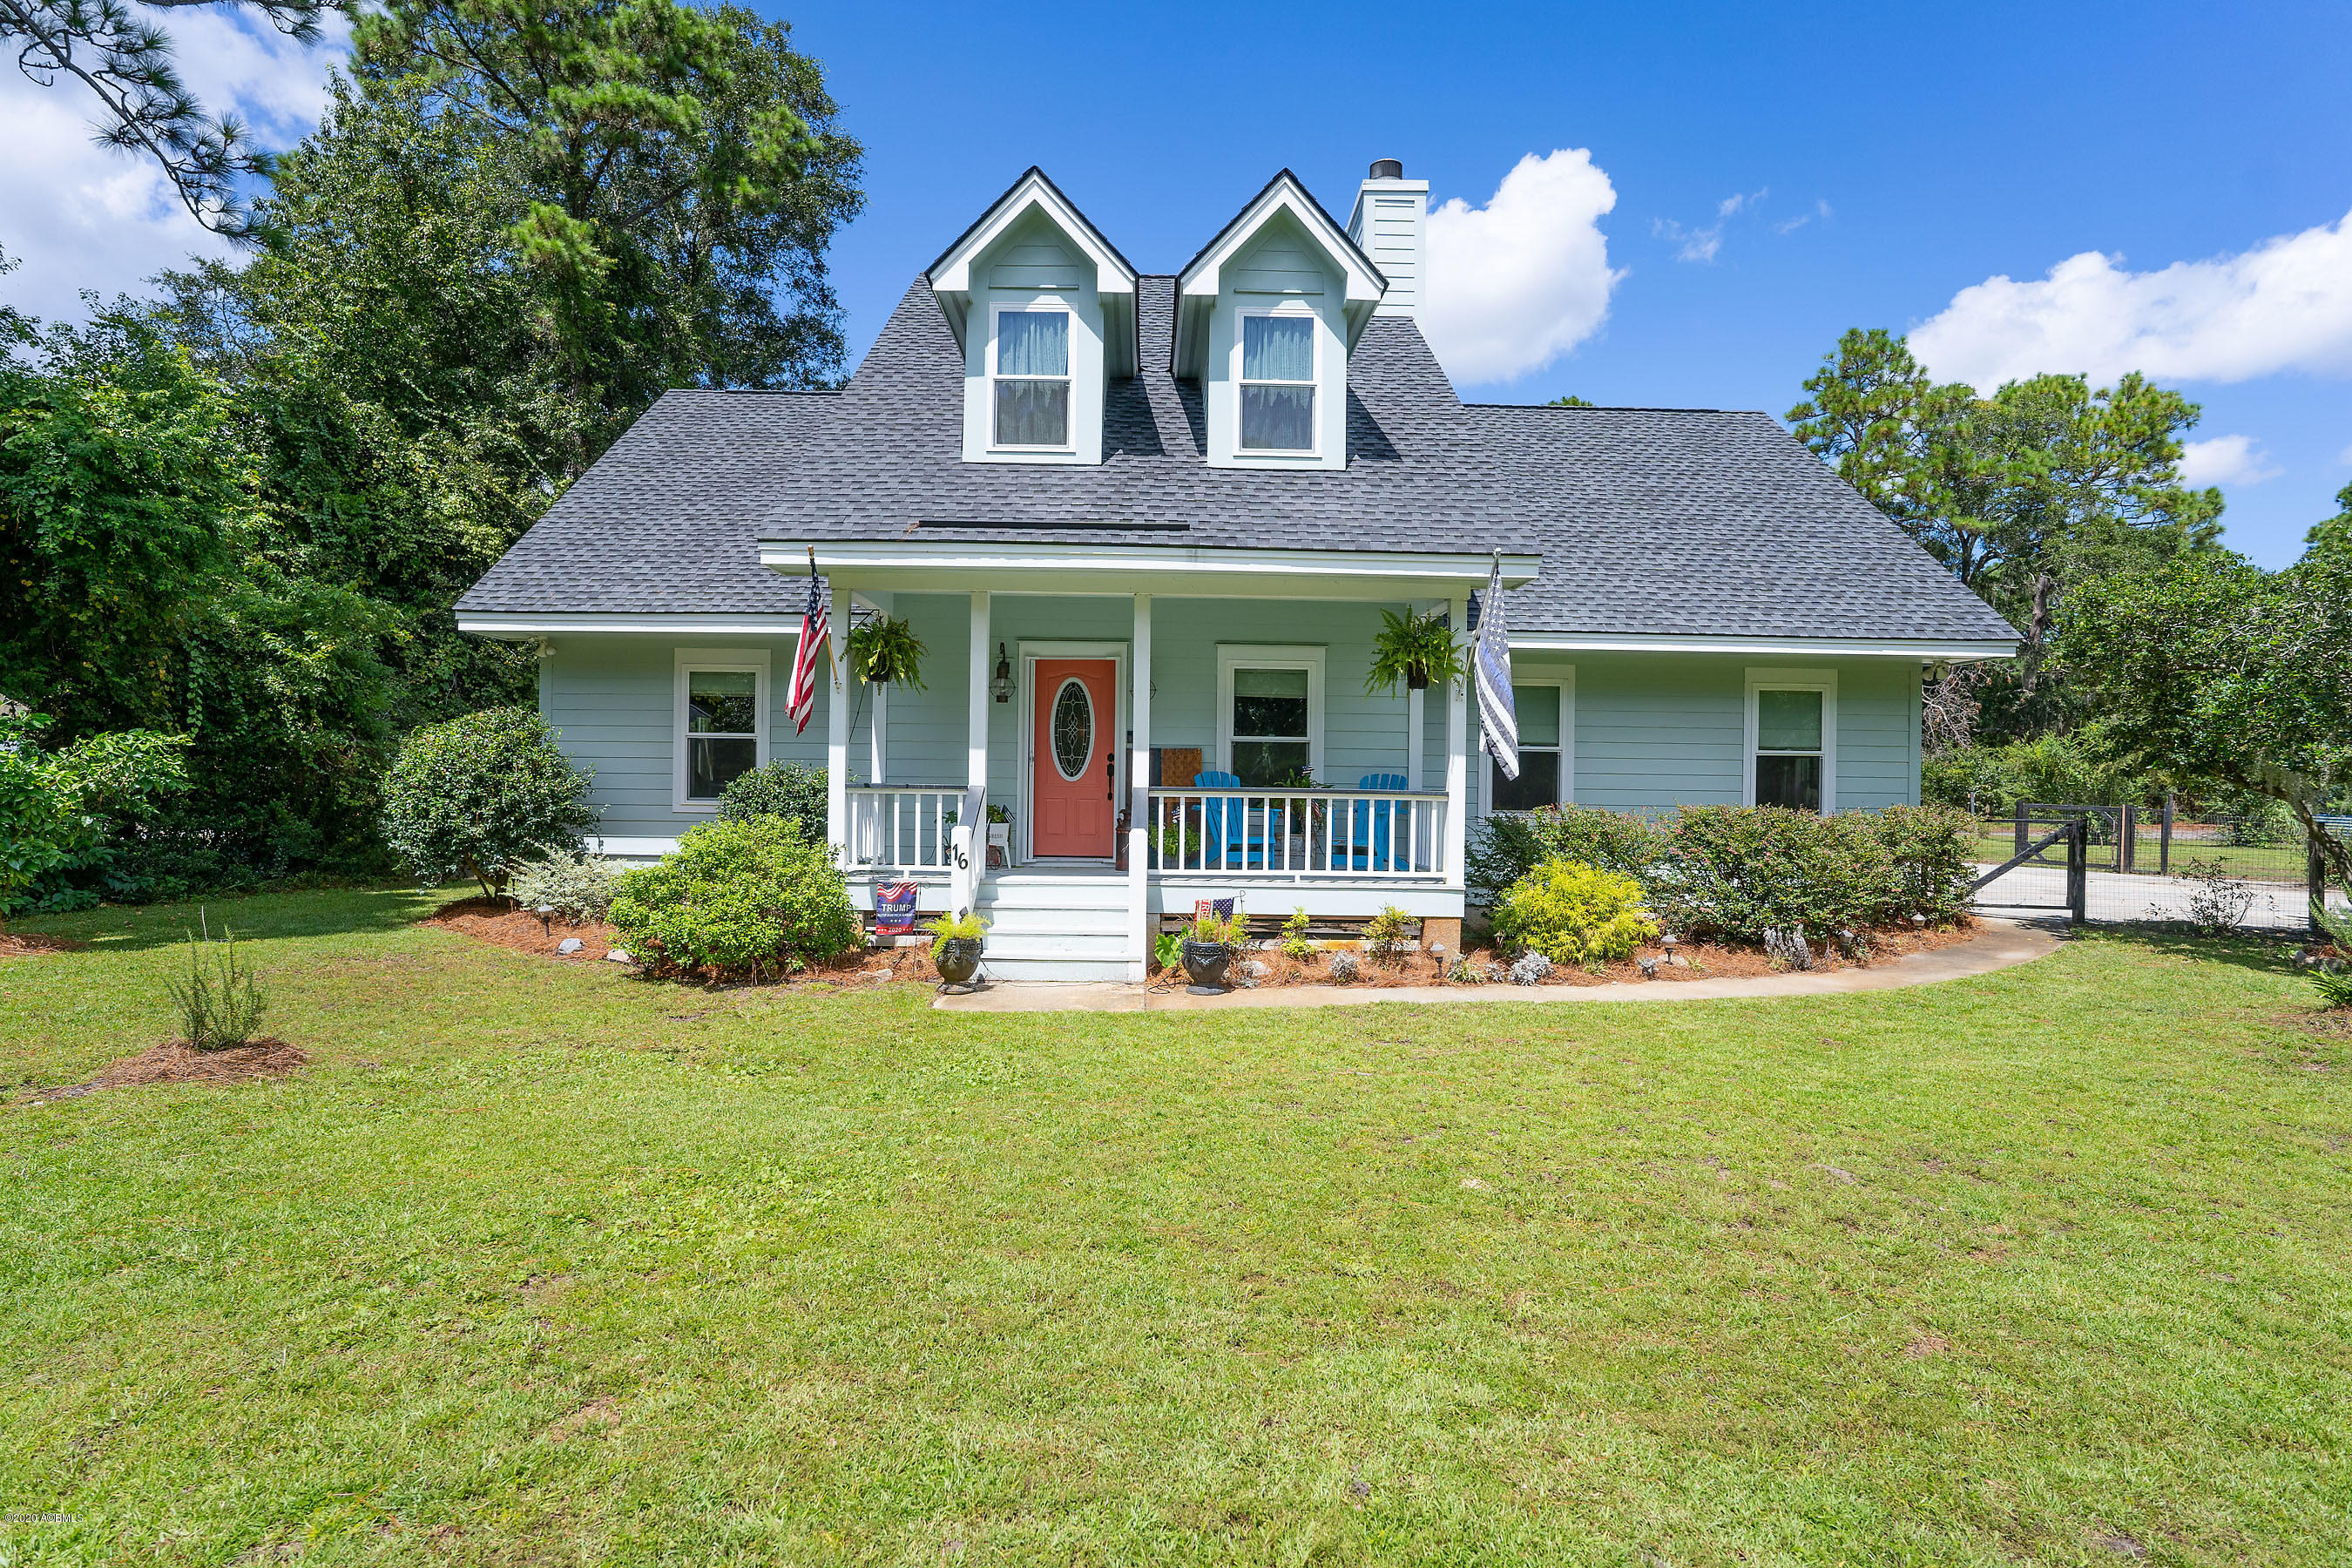 Photo of 16 Blue Heron Circle, Beaufort, SC 29907